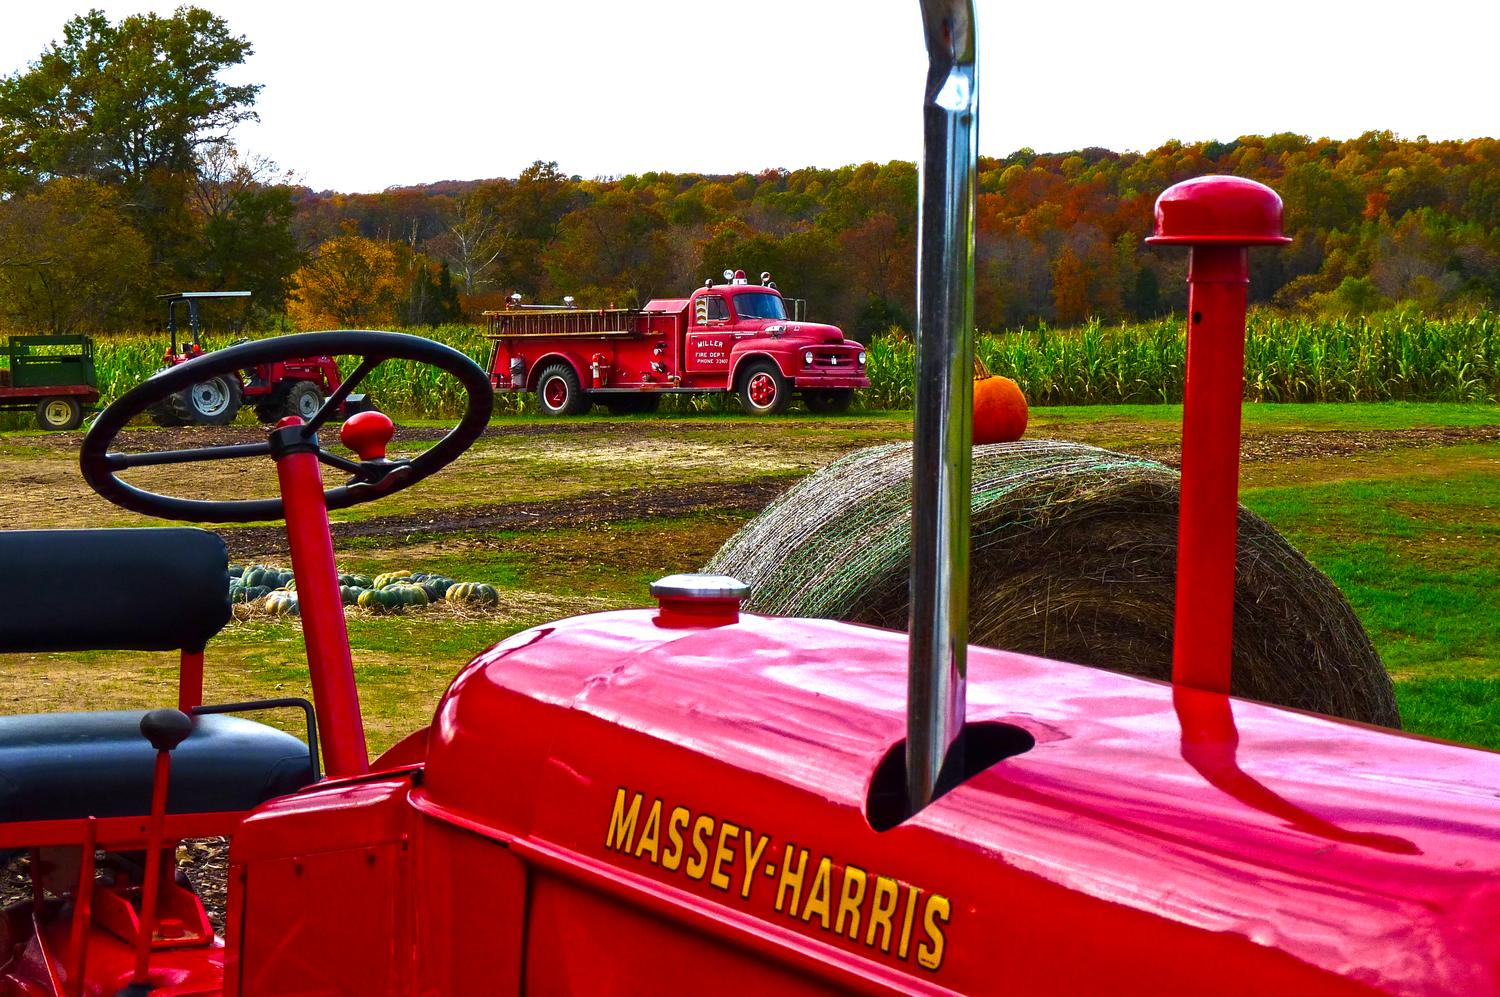 Warrenton, Virginia-  Panasonic DMC-FZ35 - An old tractor along with an old fire engine. - Tony Karp, design, art, photography, techno-impressionist, techno-impressionism, aerial photography , drone , drones , dji , mavic pro , video , 3D printing - Books -